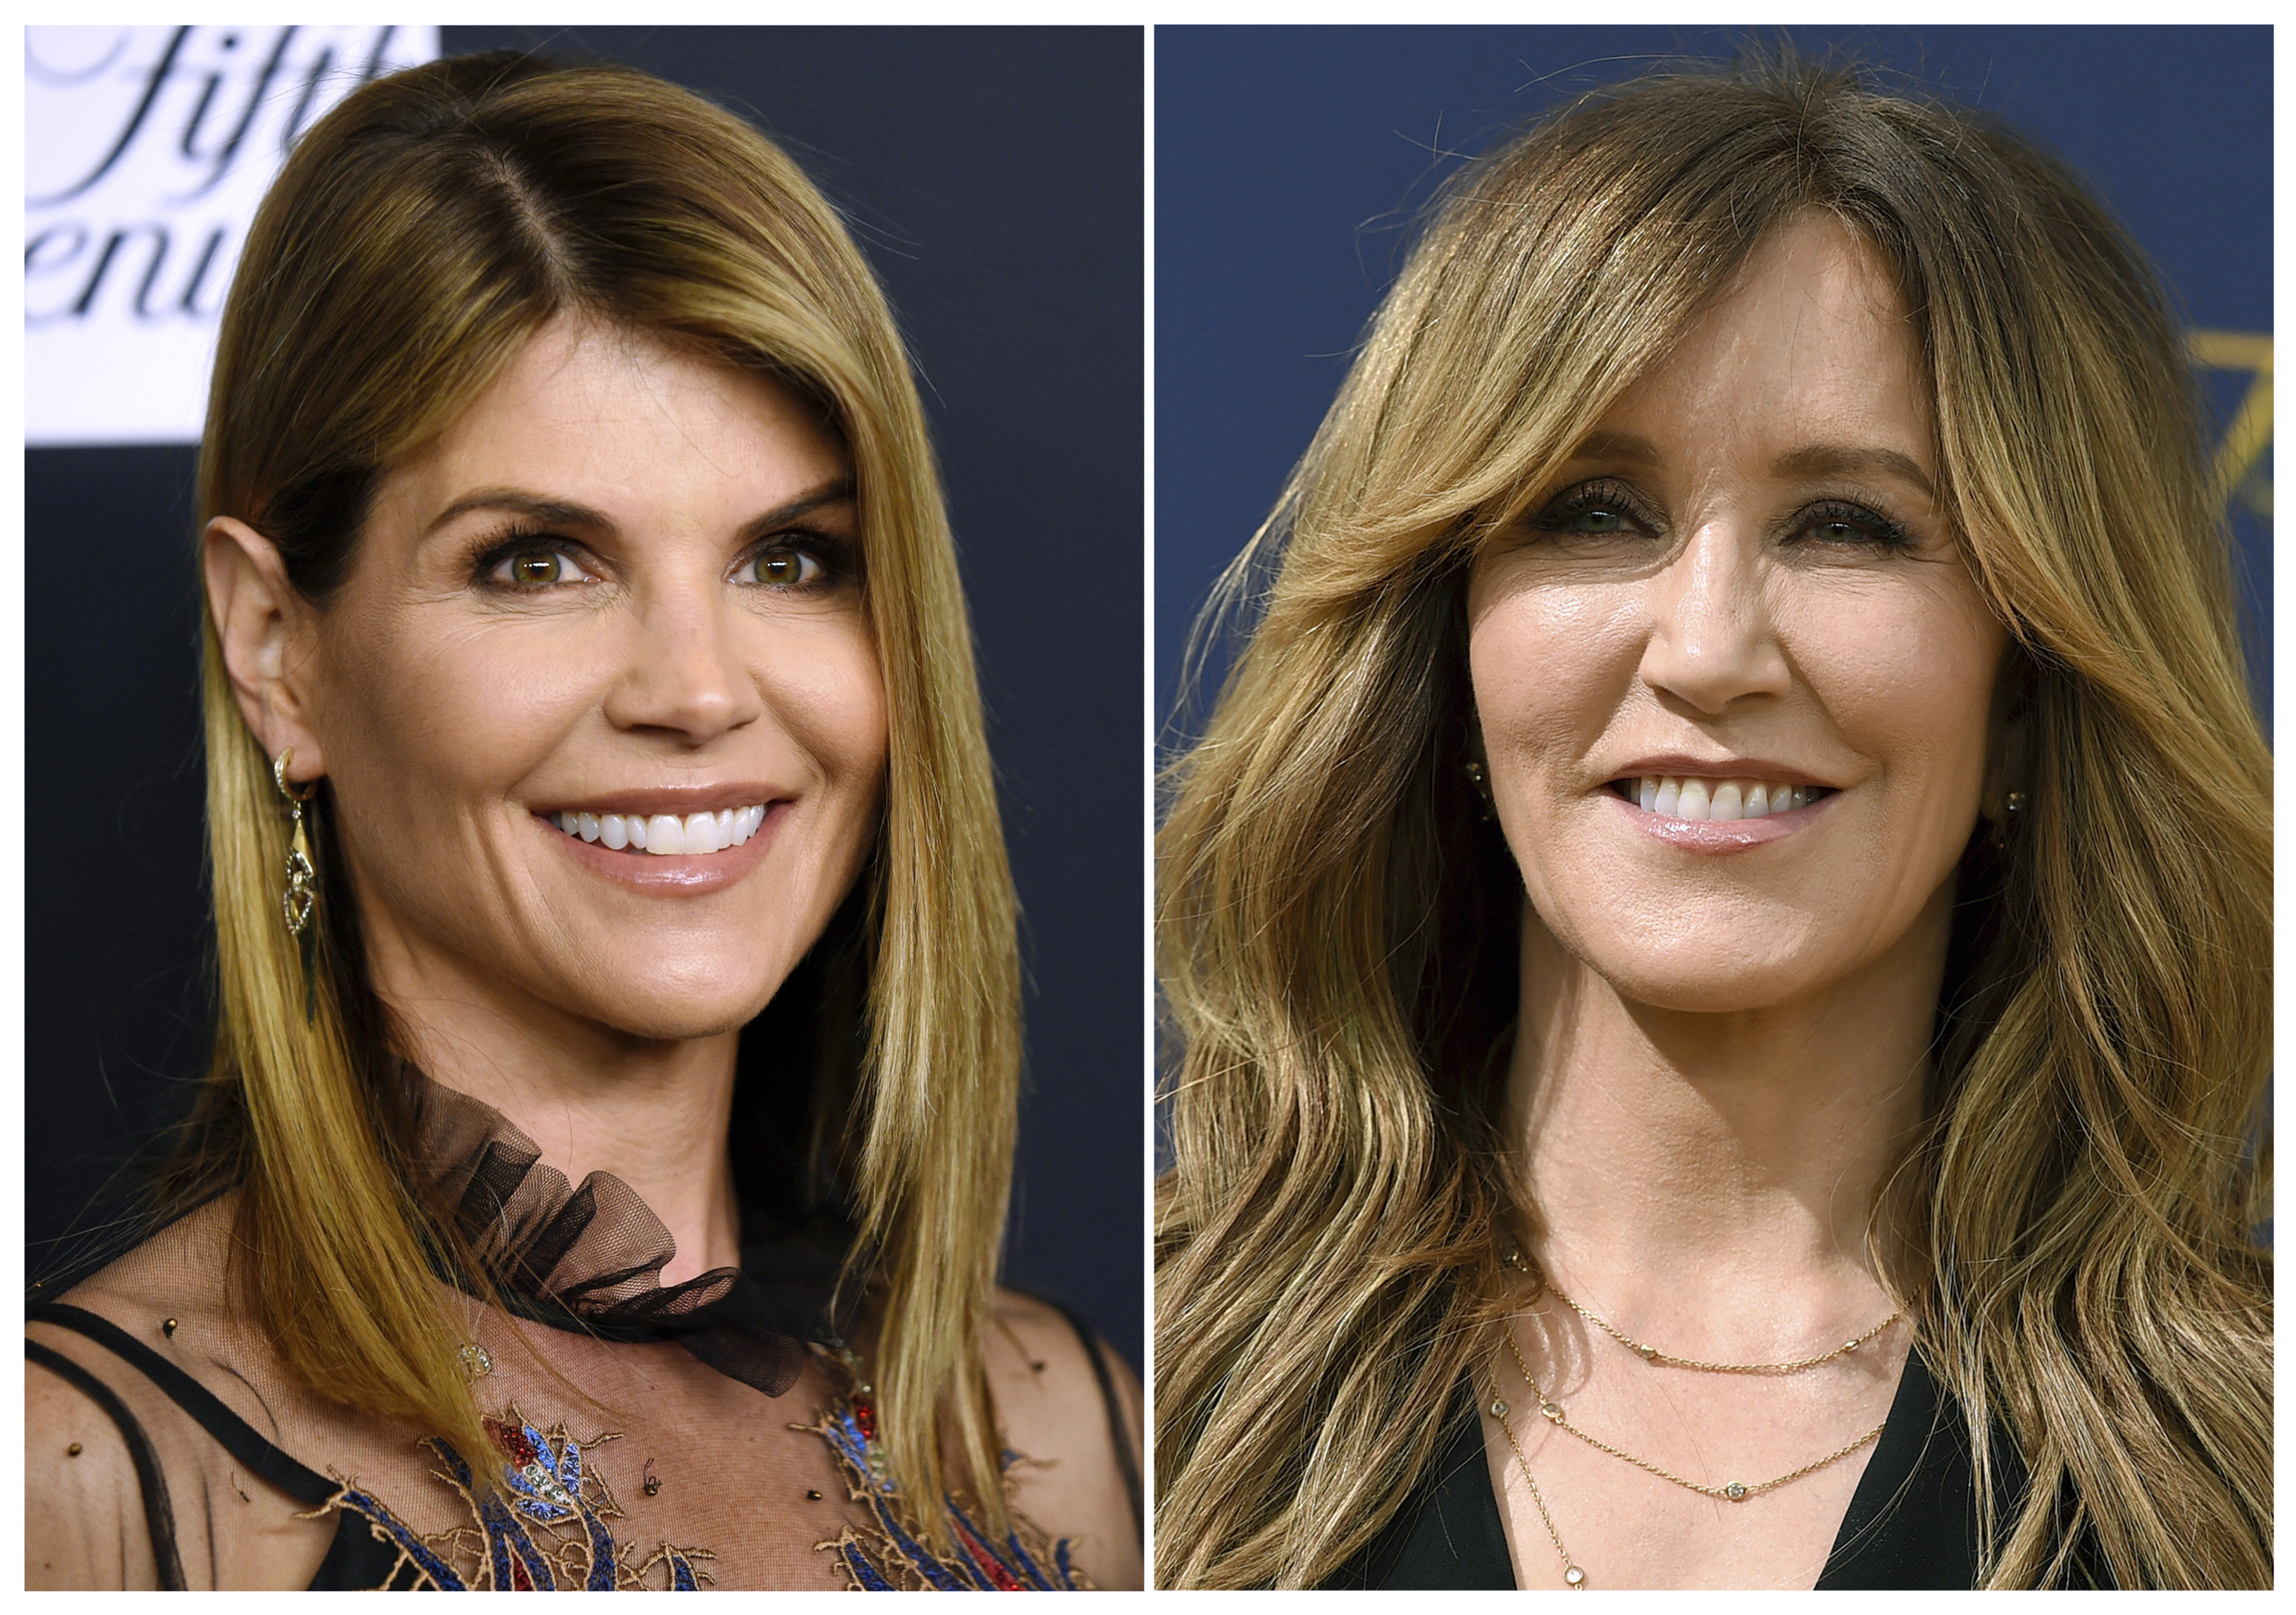 Lori Loughlin's Sentence Will Likely Be Harsher Than Felicity Huffman's, Says US Attorney